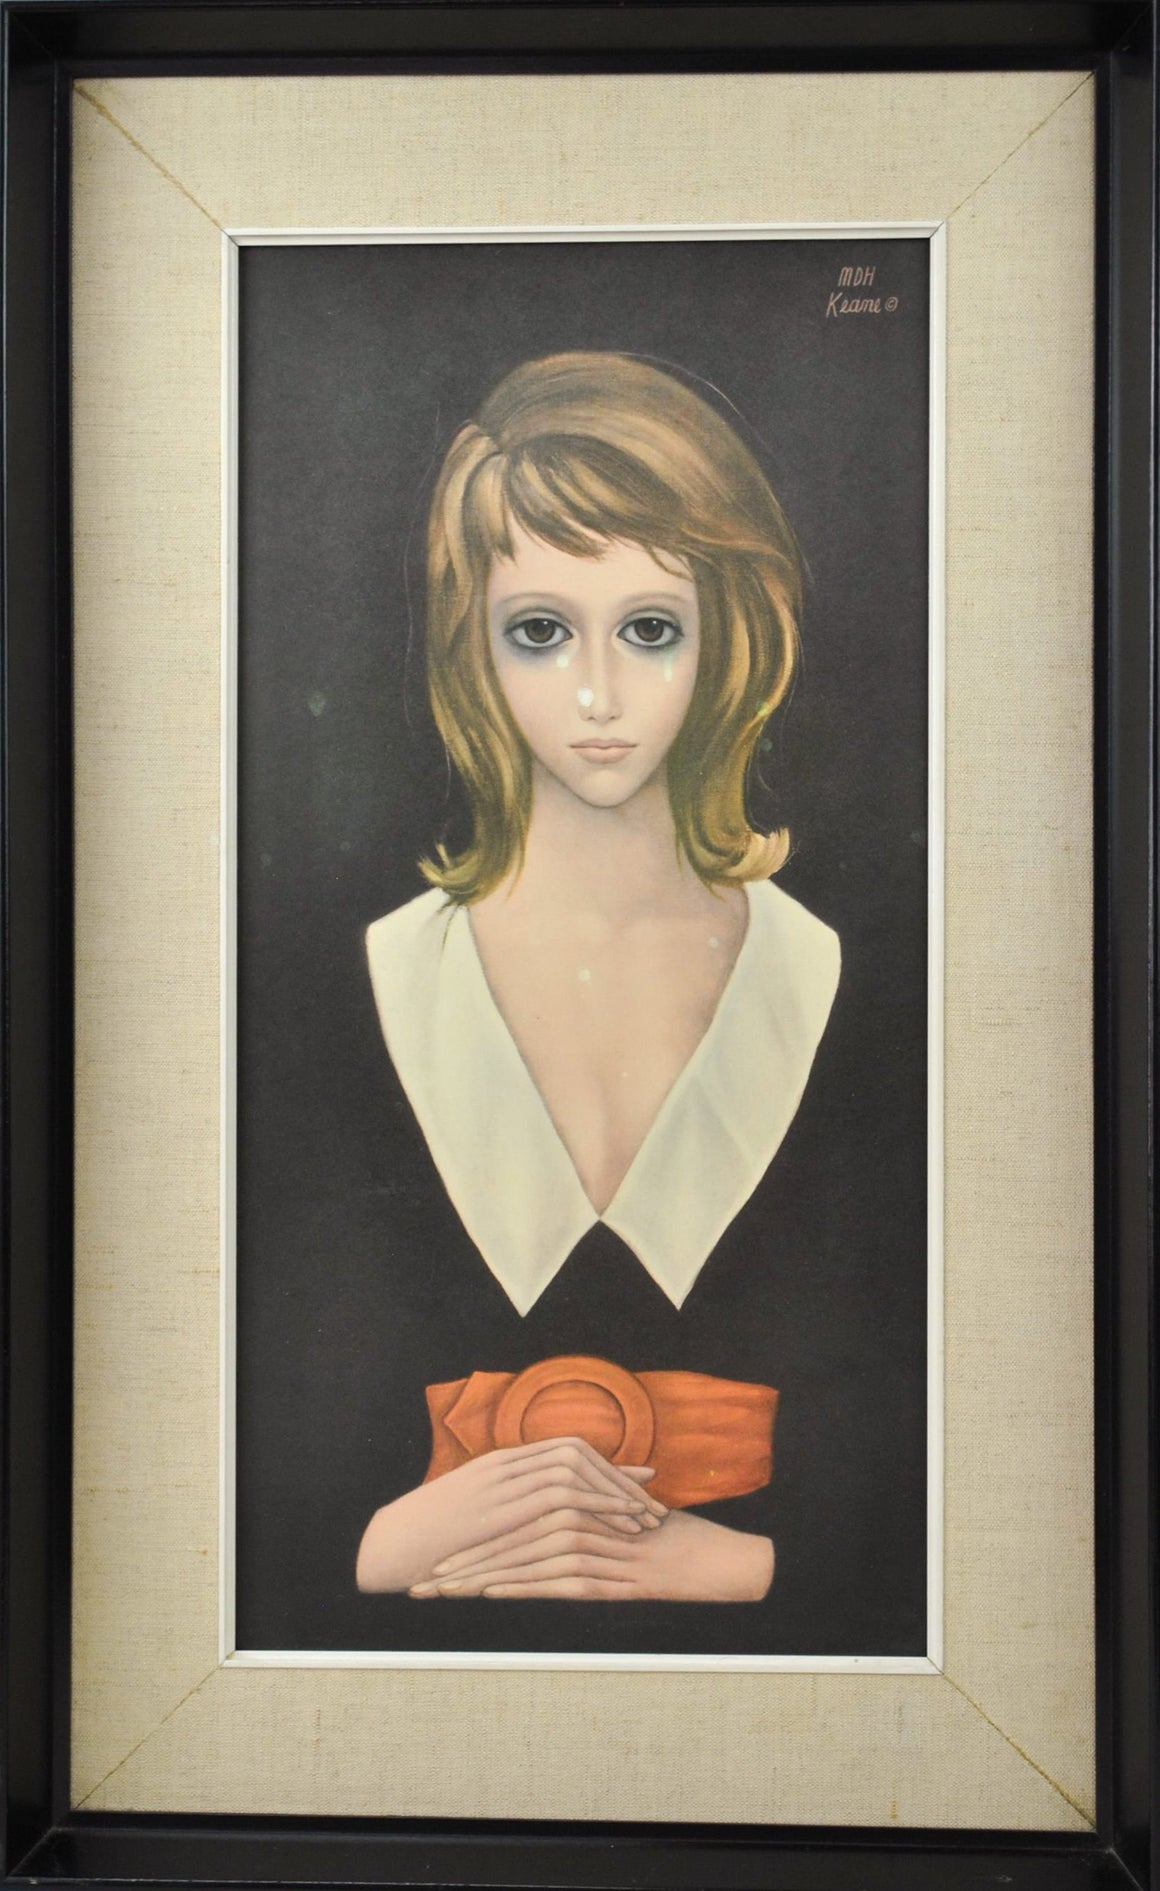 Margaret Keane - Young Woman - Offset Lithograph on Board